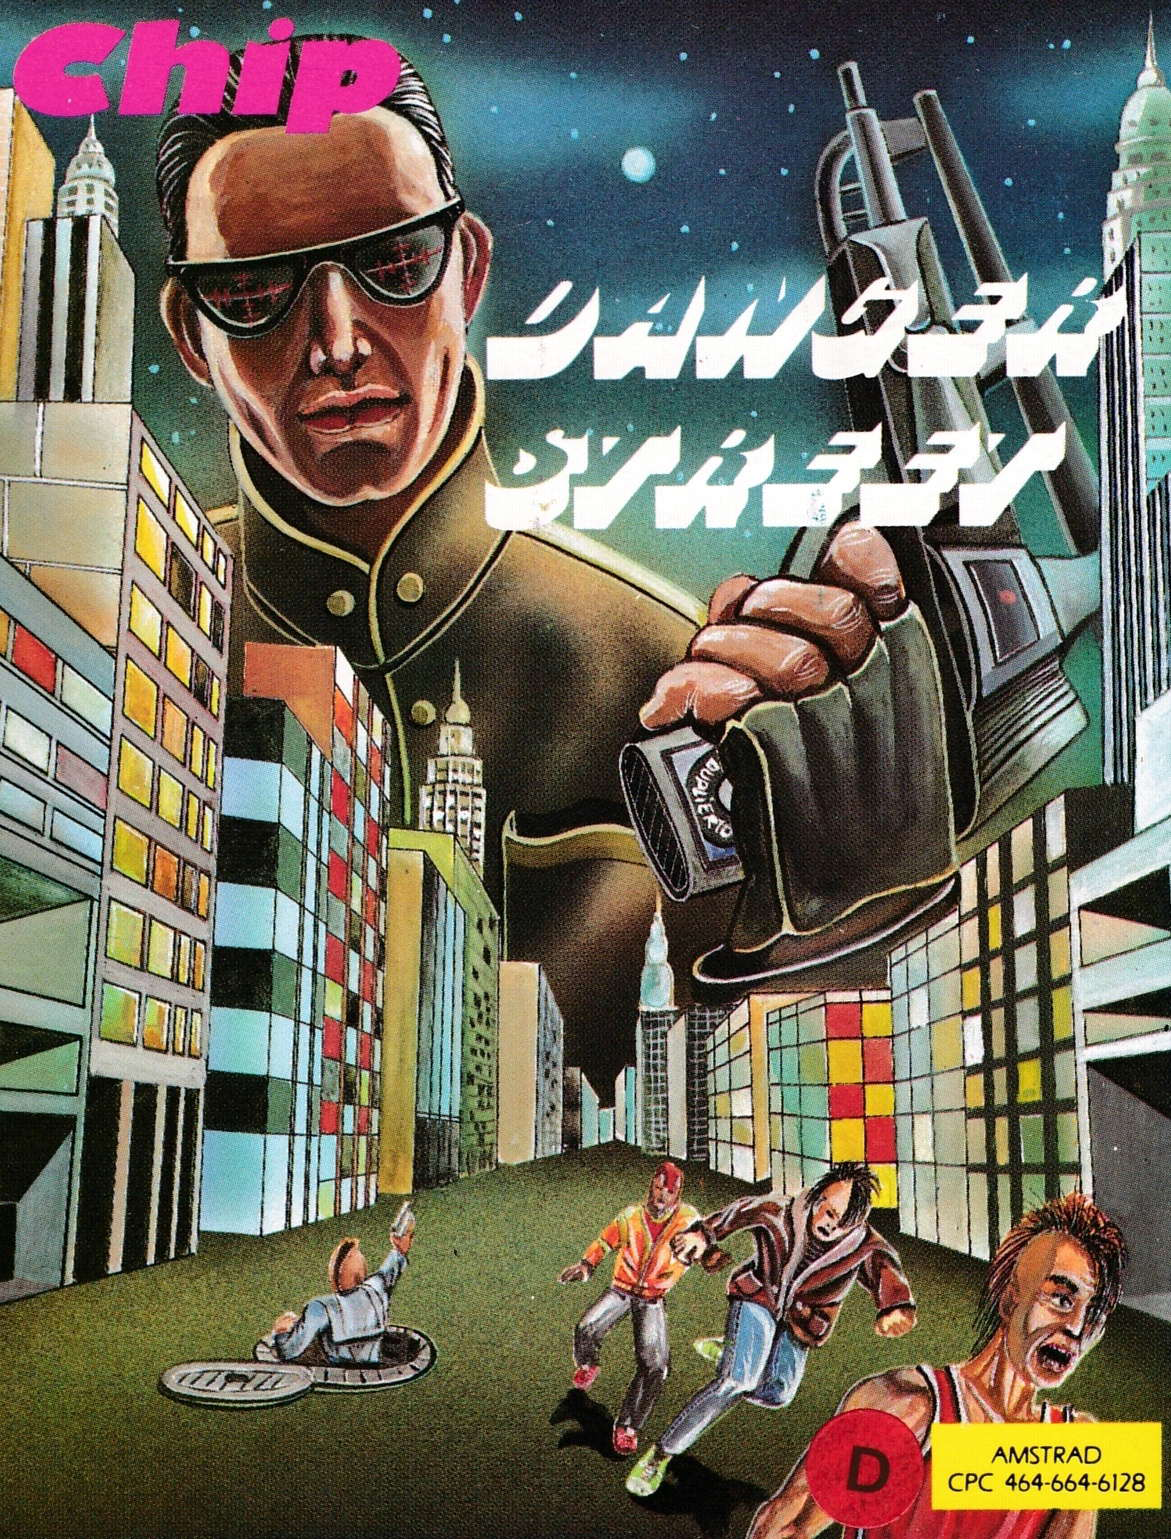 cover of the Amstrad CPC game Danger Street  by GameBase CPC